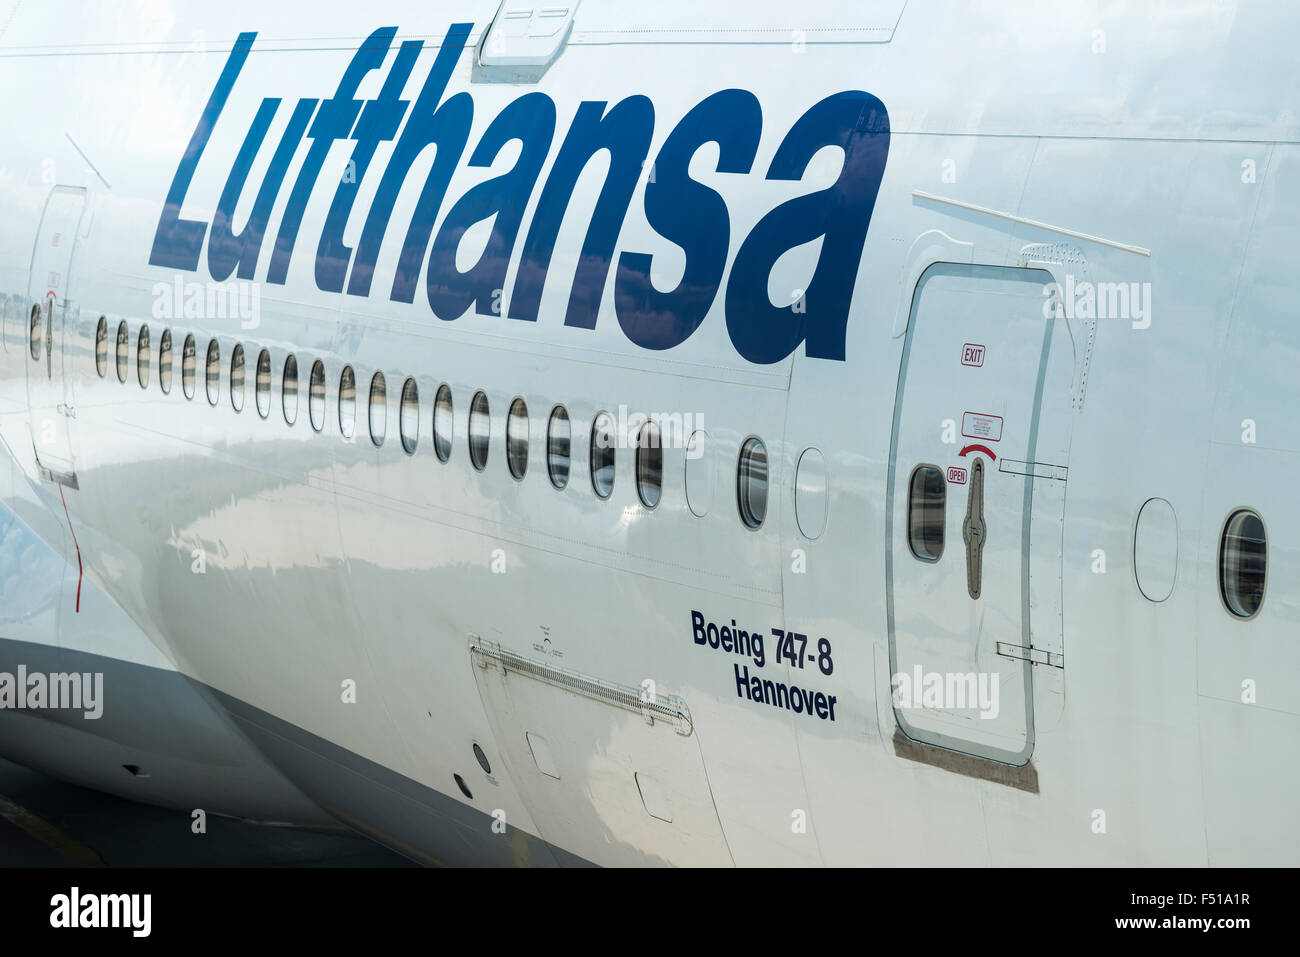 The door of the parking Boeing 747 Hannover of the airline Lufthansa at Frankfurt International Airport & The door of the parking Boeing 747 Hannover of the airline Lufthansa ...